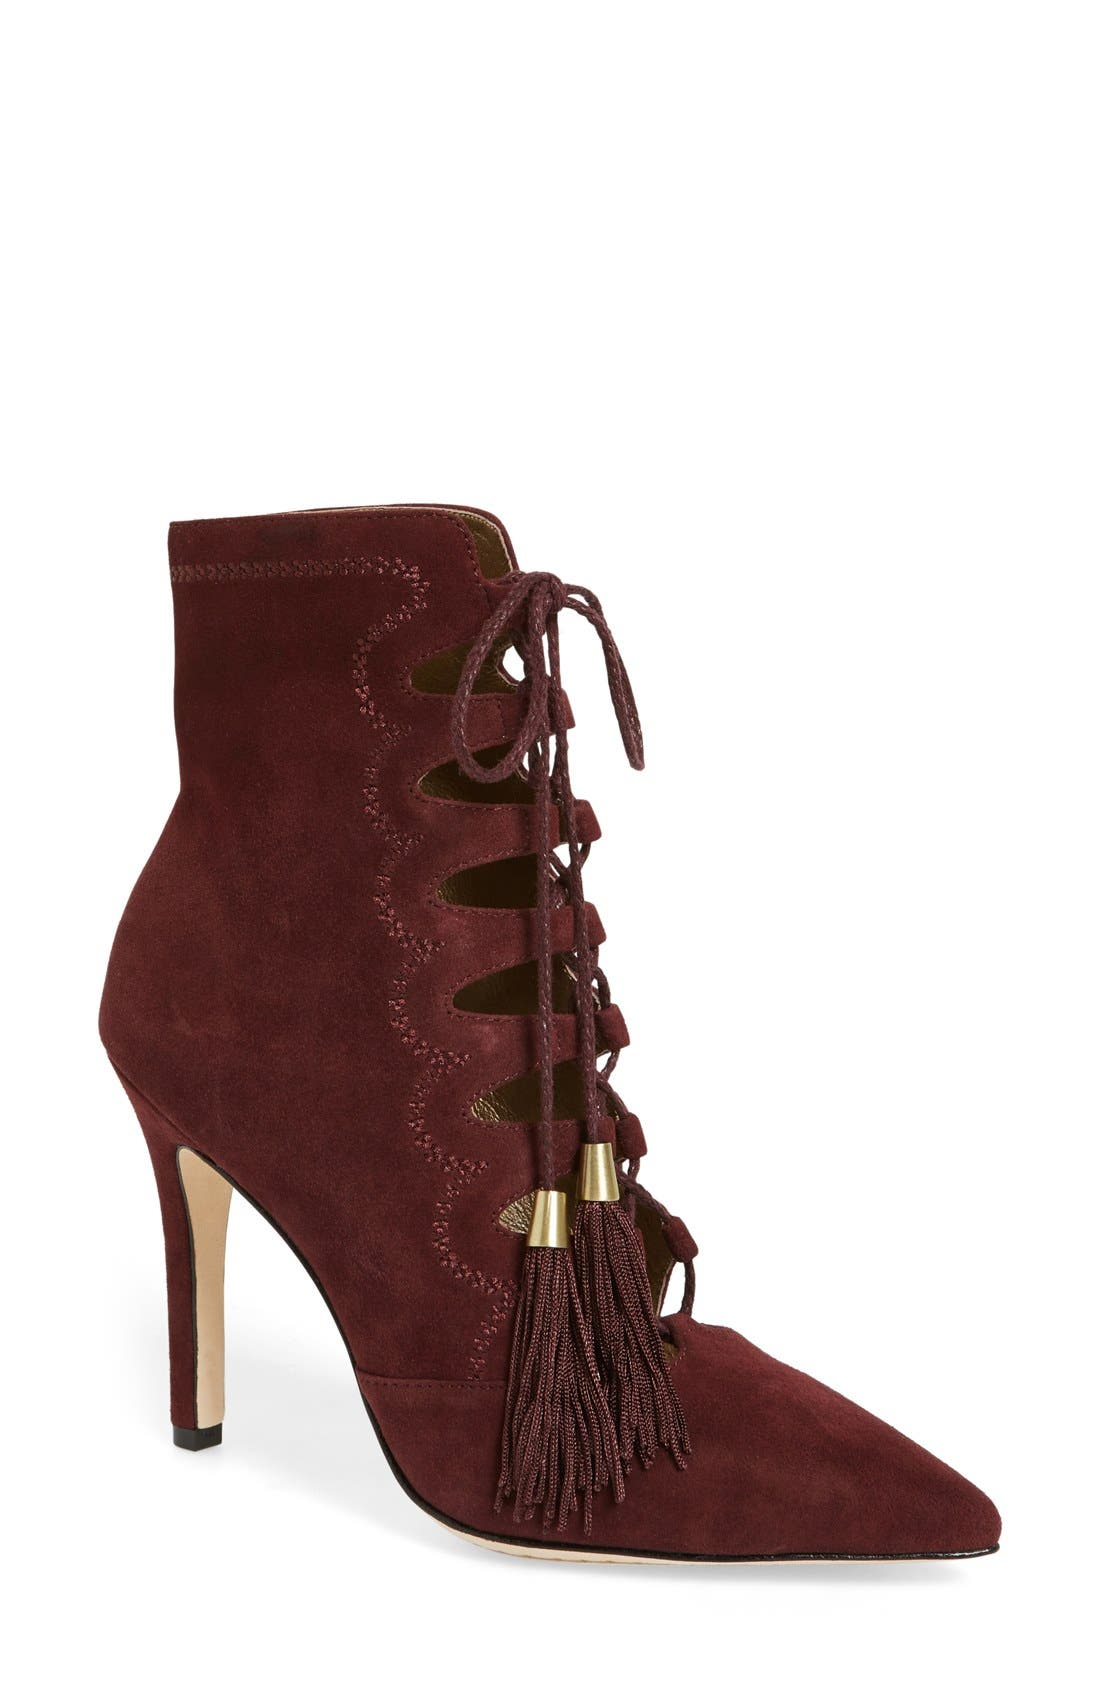 Alternate Image 1 Selected - Cynthia Vincent 'Harp' Lace Up Bootie(Women)